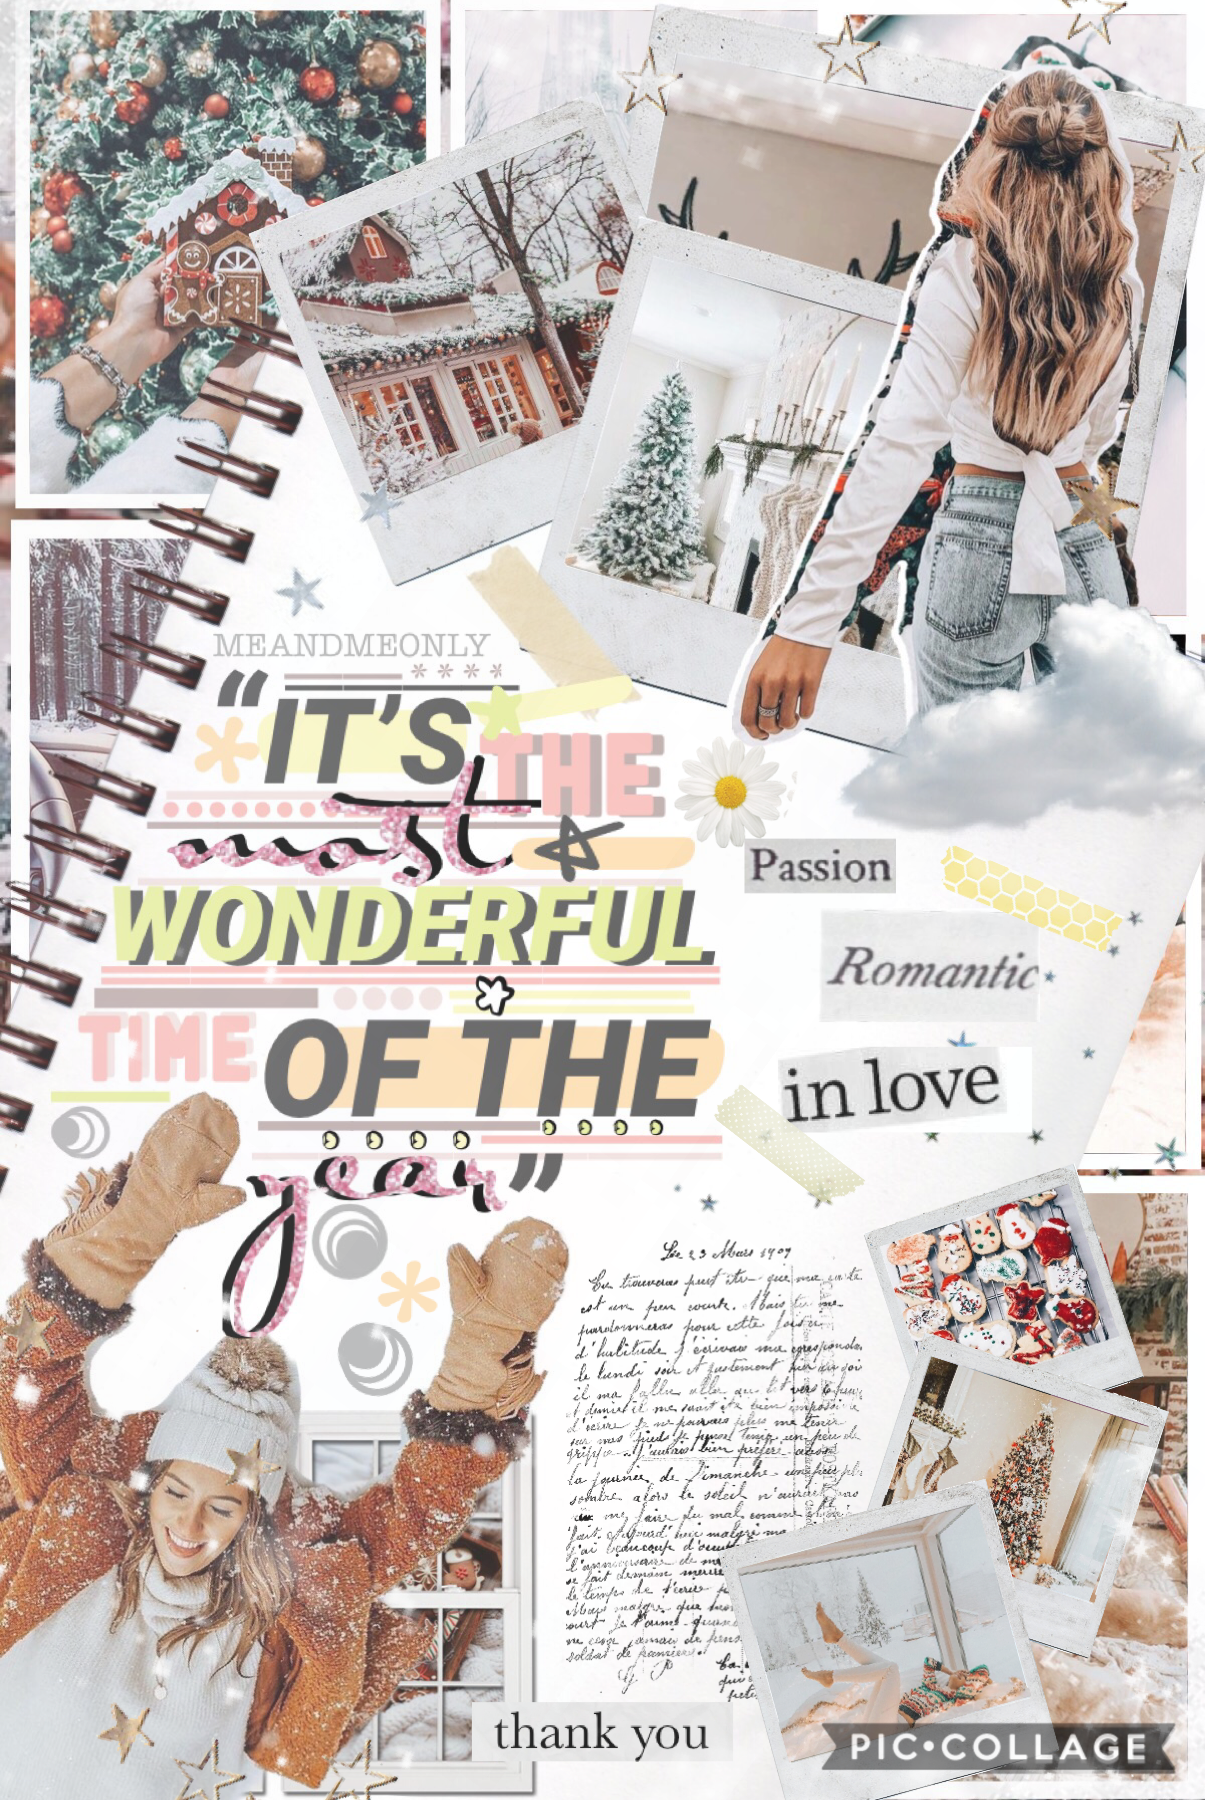 OMG 2 DAYS TILL CHRISTMAS💖🧚♀️🤩im posting a really important collage soon :) tell me what you asked for Christmas in the comments🎄✨im wishing you all an amazing holiday🥰🥰